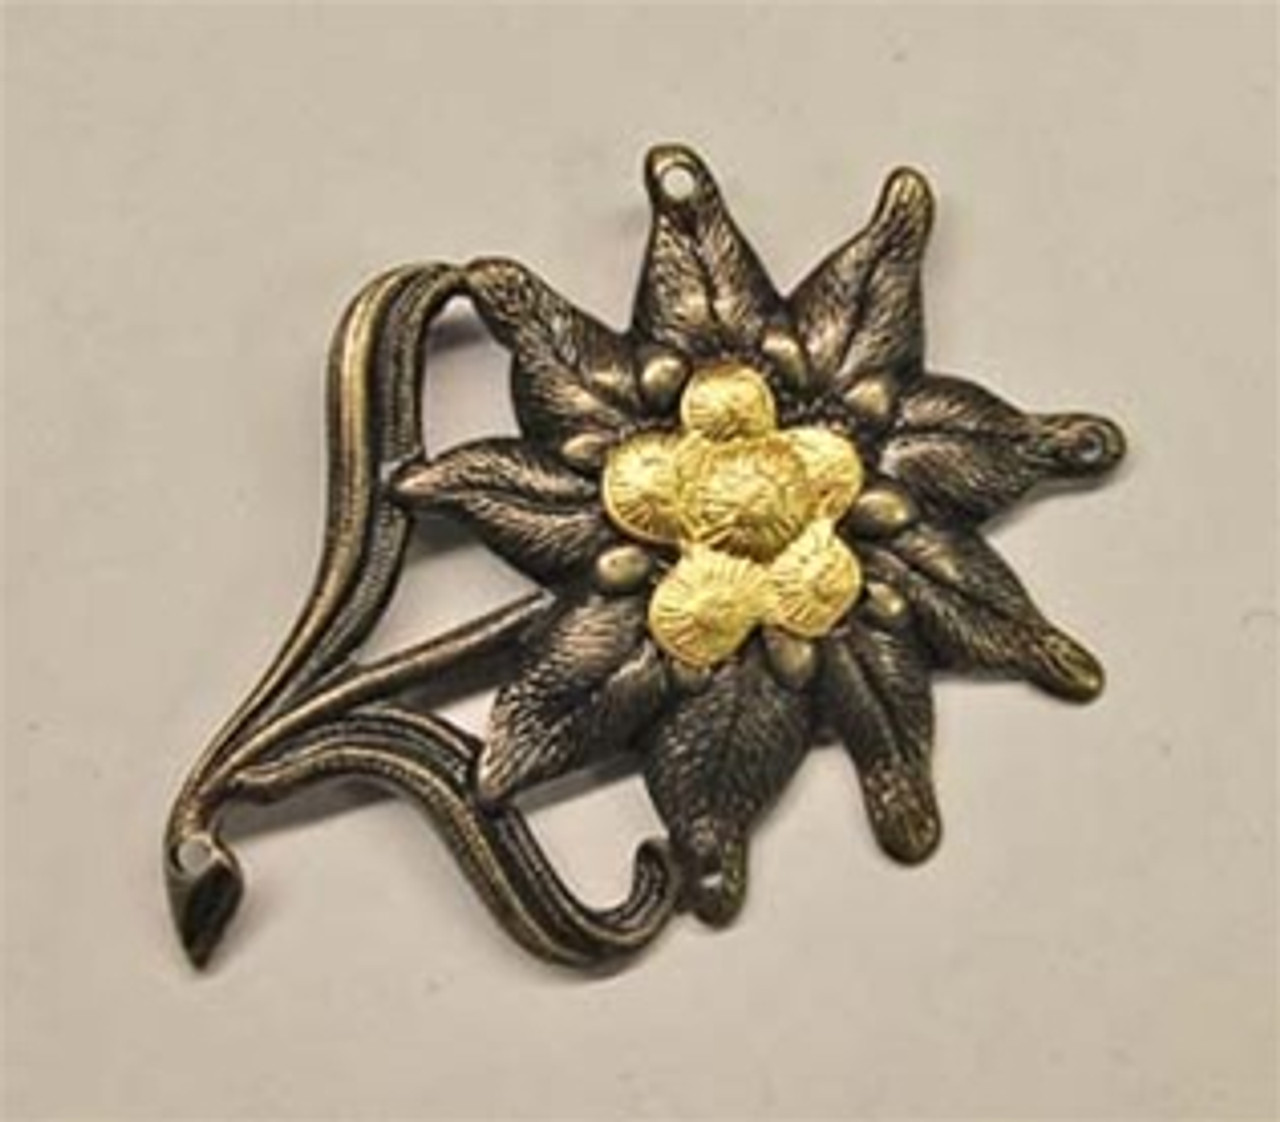 Bw German Army Edelweiss Cap Insignia from Hessen Antique